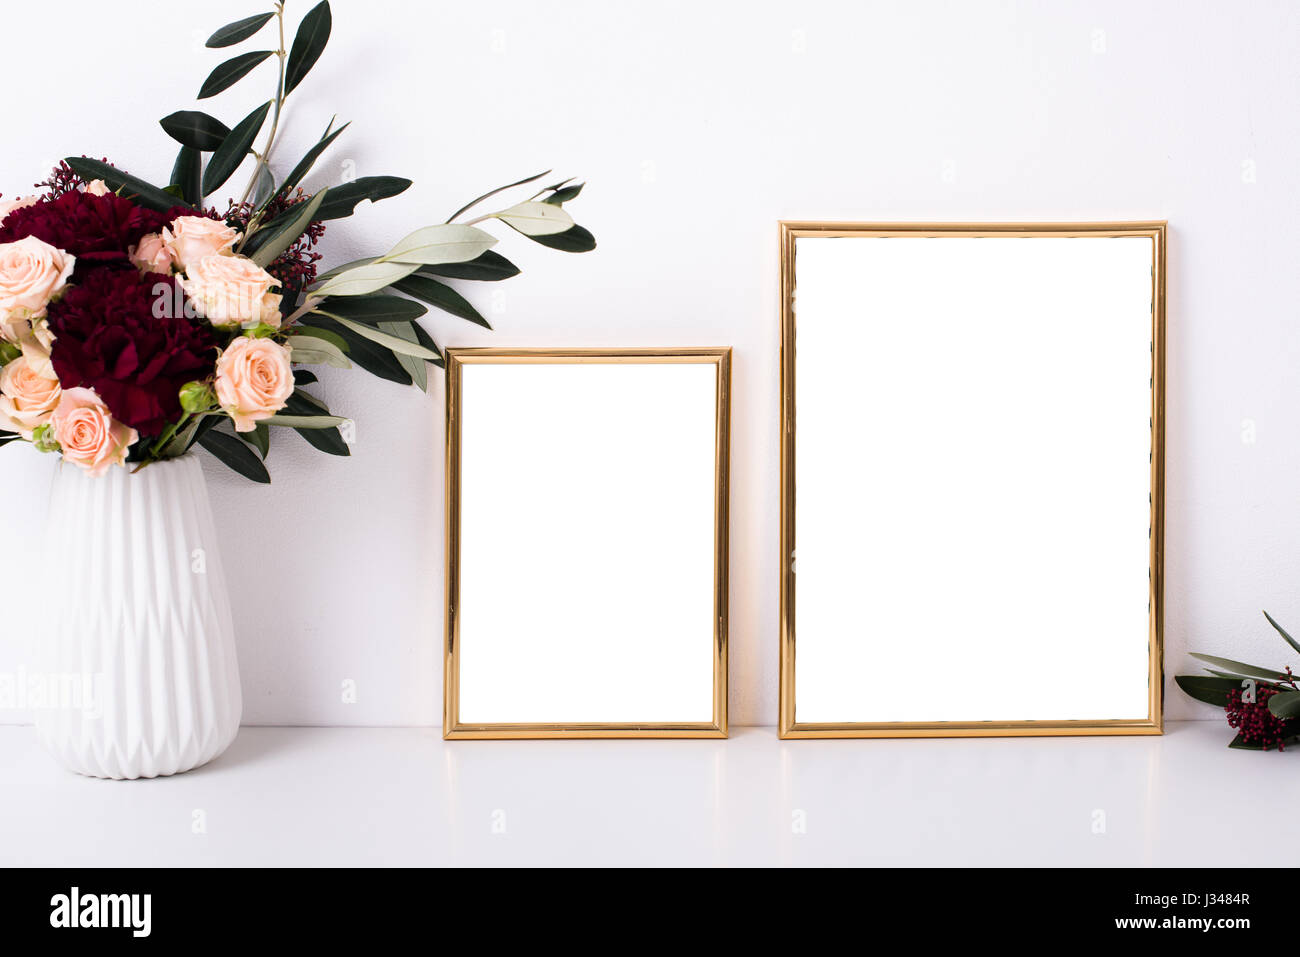 Two Golden Frames Mock Up On White Wall Background Home Decor With